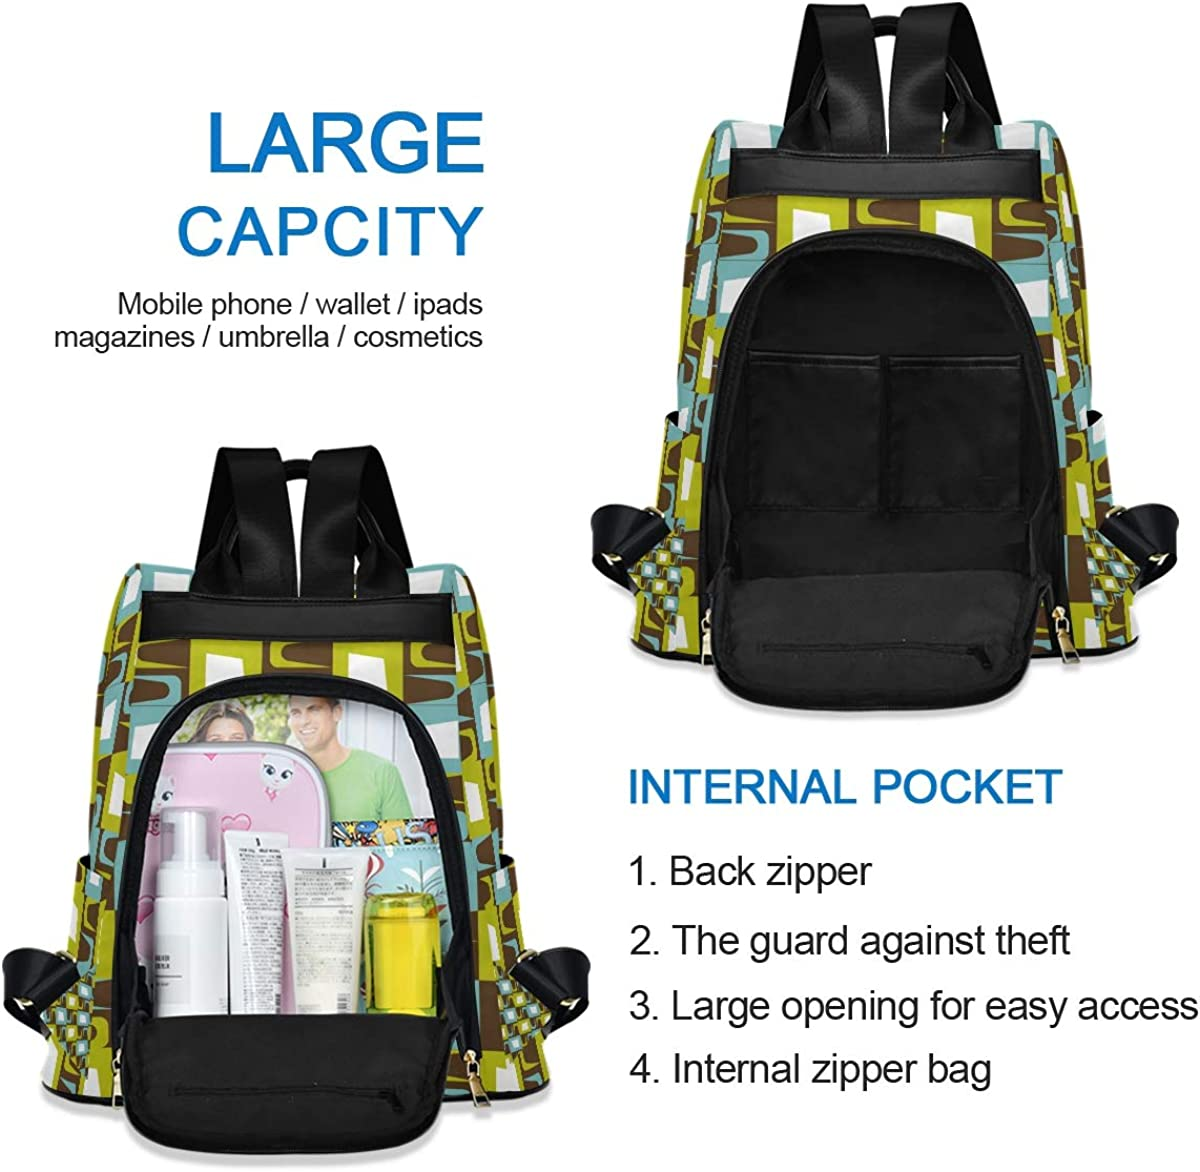 Irregular Rectangle Ornament Womens Computer Backpack College School Shoulders Bag Waterproof Travel 12.9 Inch Laptop Backpack with Grey Wool Ball Key Chain